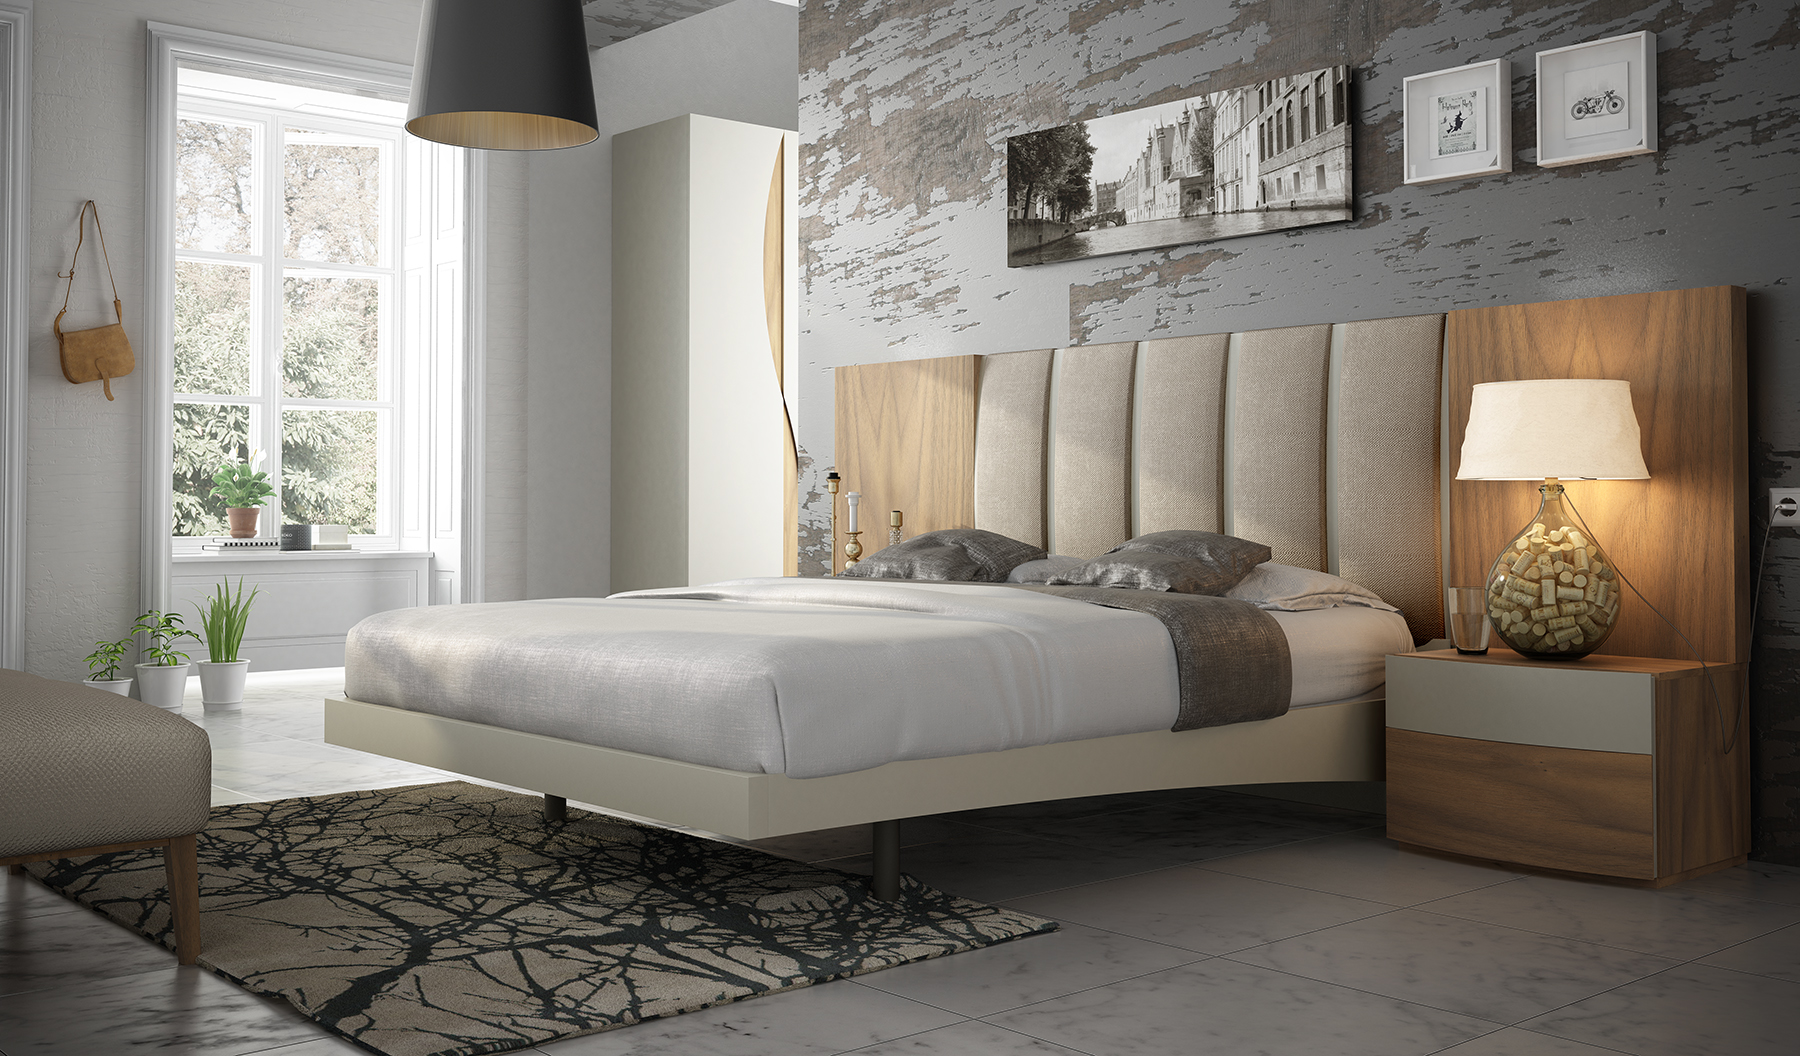 Unique wood high end platform bed cleveland ohio fenicia for Cool high beds